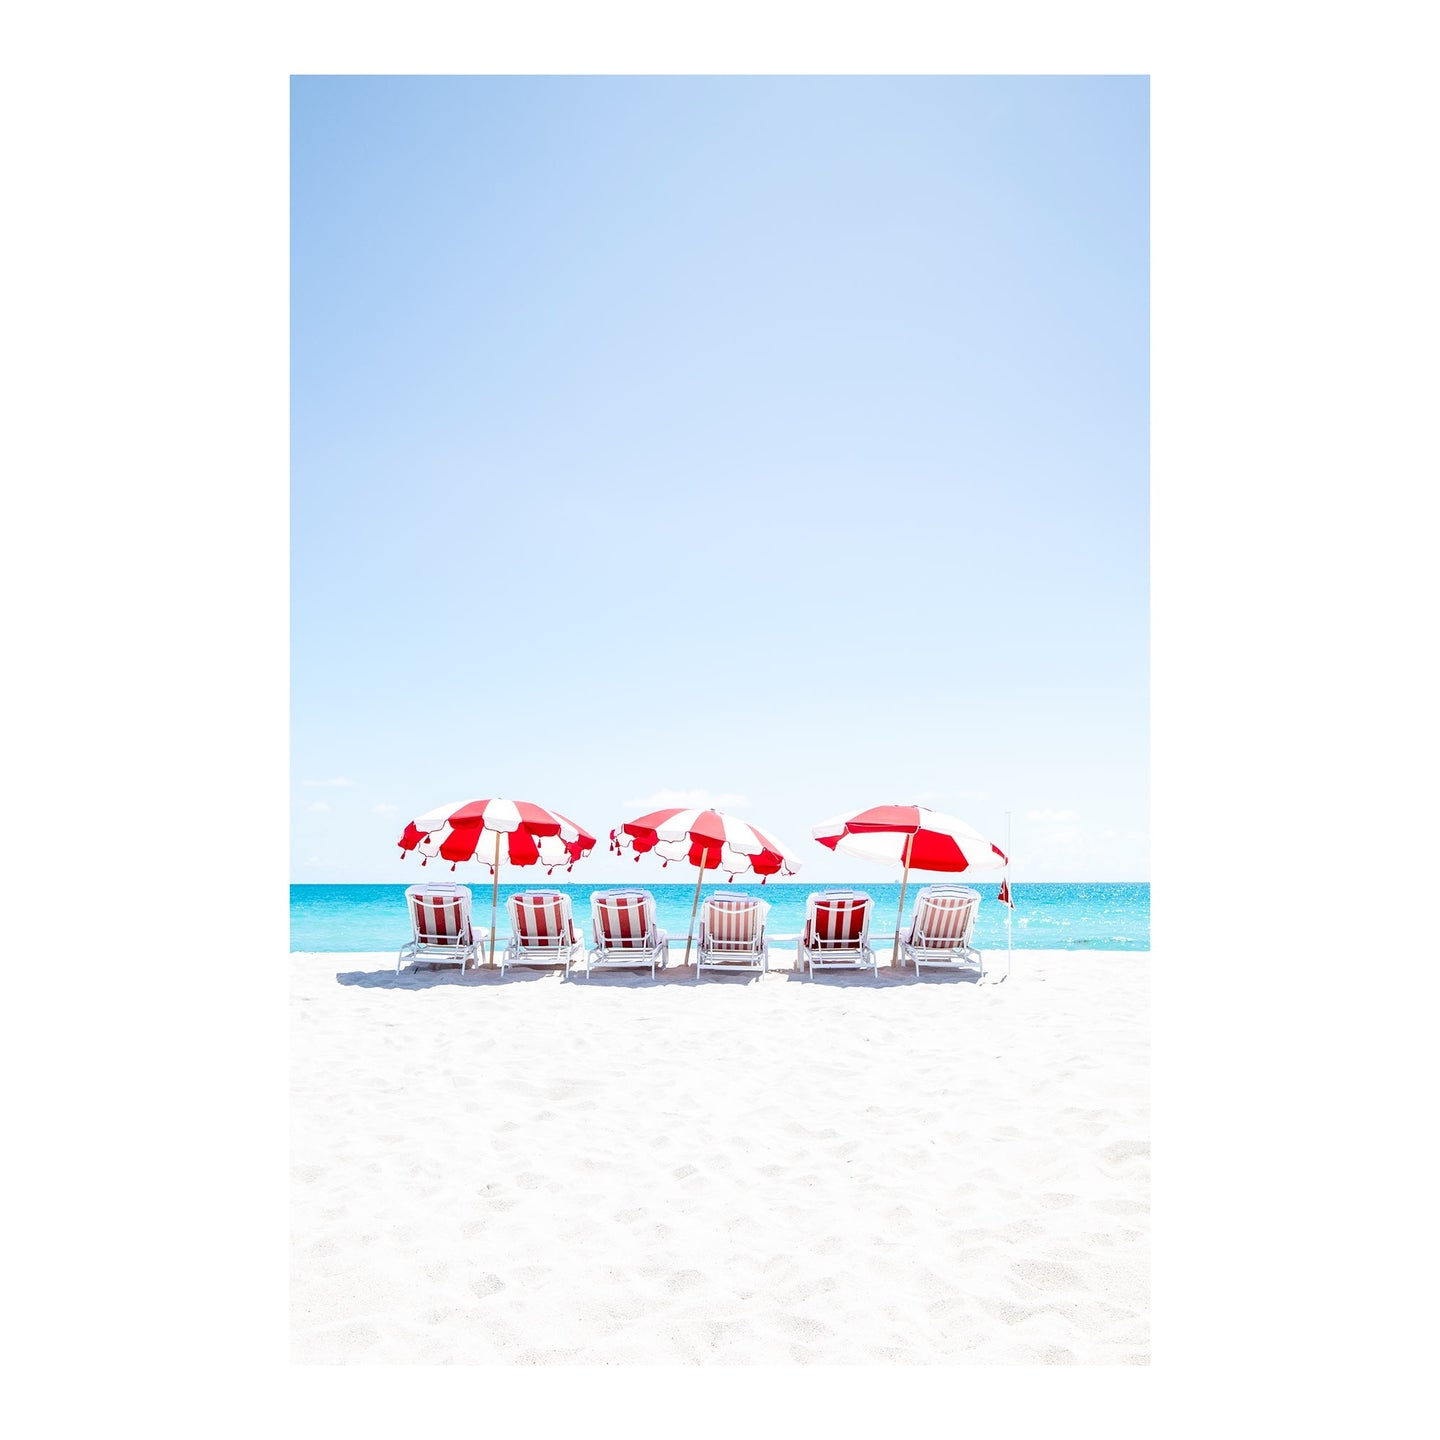 Red and White Umbrellas, Miami